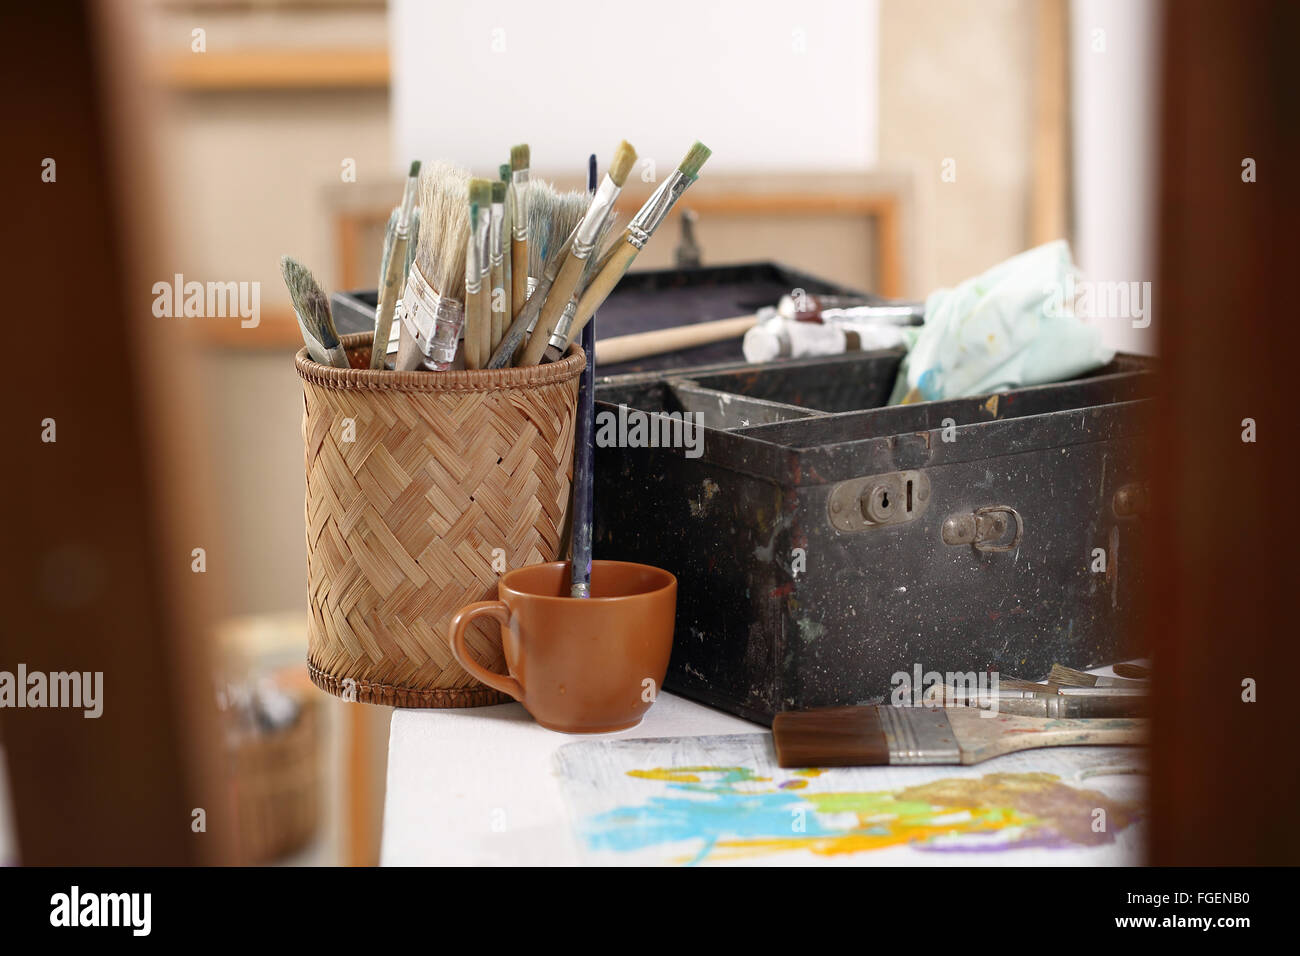 Workshop paint, brushes and paintings. Painting workshop and painting accessories - Stock Image